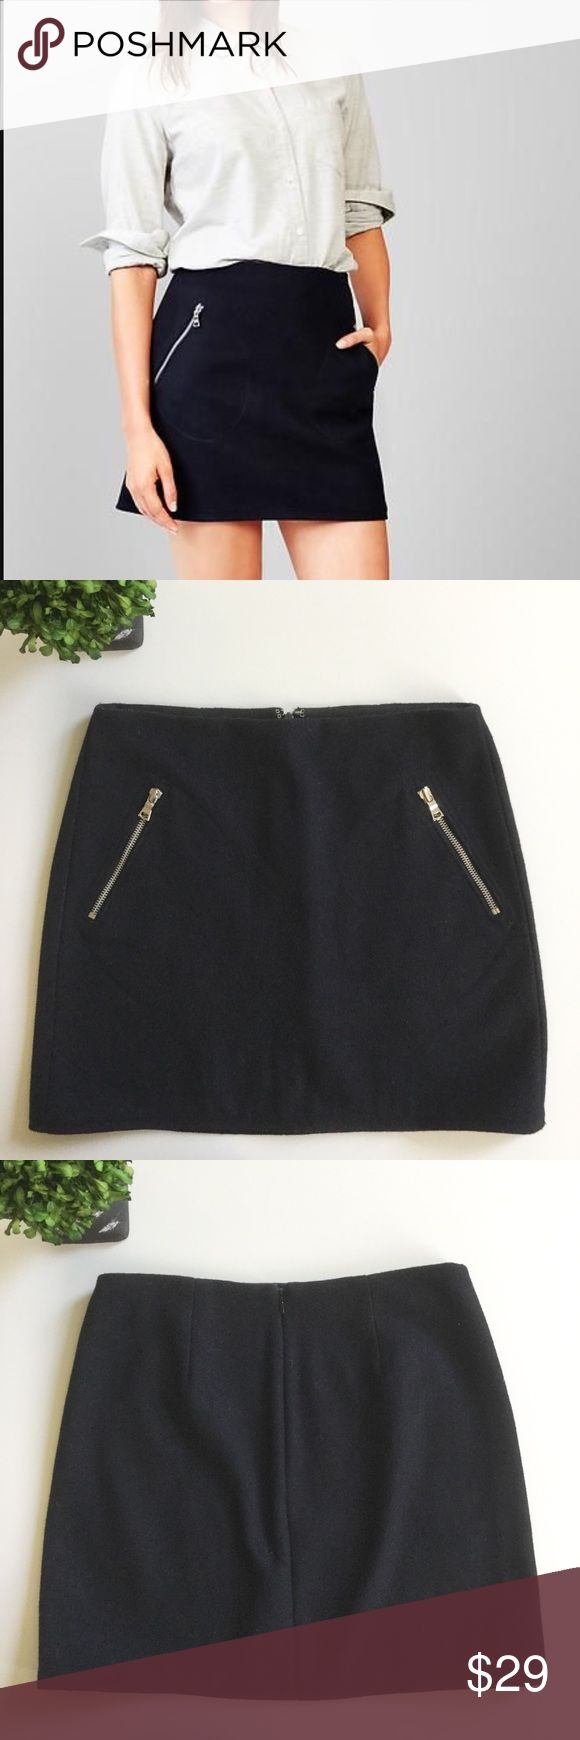 """GAP Black Wool Skirt With Zip Pockets Gently used condition. Essential wardrobe staple this skirt will look great with a multitude of different tops/sweaters. Waist: 14"""". Hips: 18 1/2"""". Length: 16"""". Ask any questions before purchasing. GAP Skirts"""